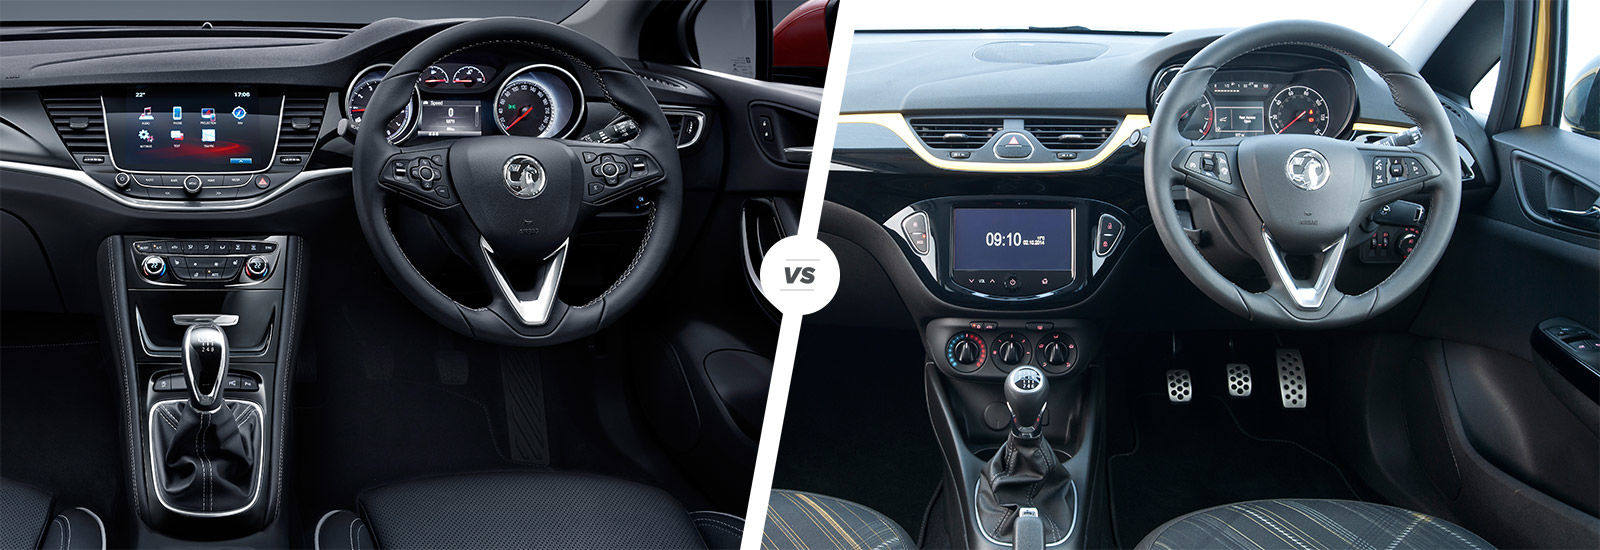 Vauxhall Astra vs Corsa side-by-side comparison | carwow